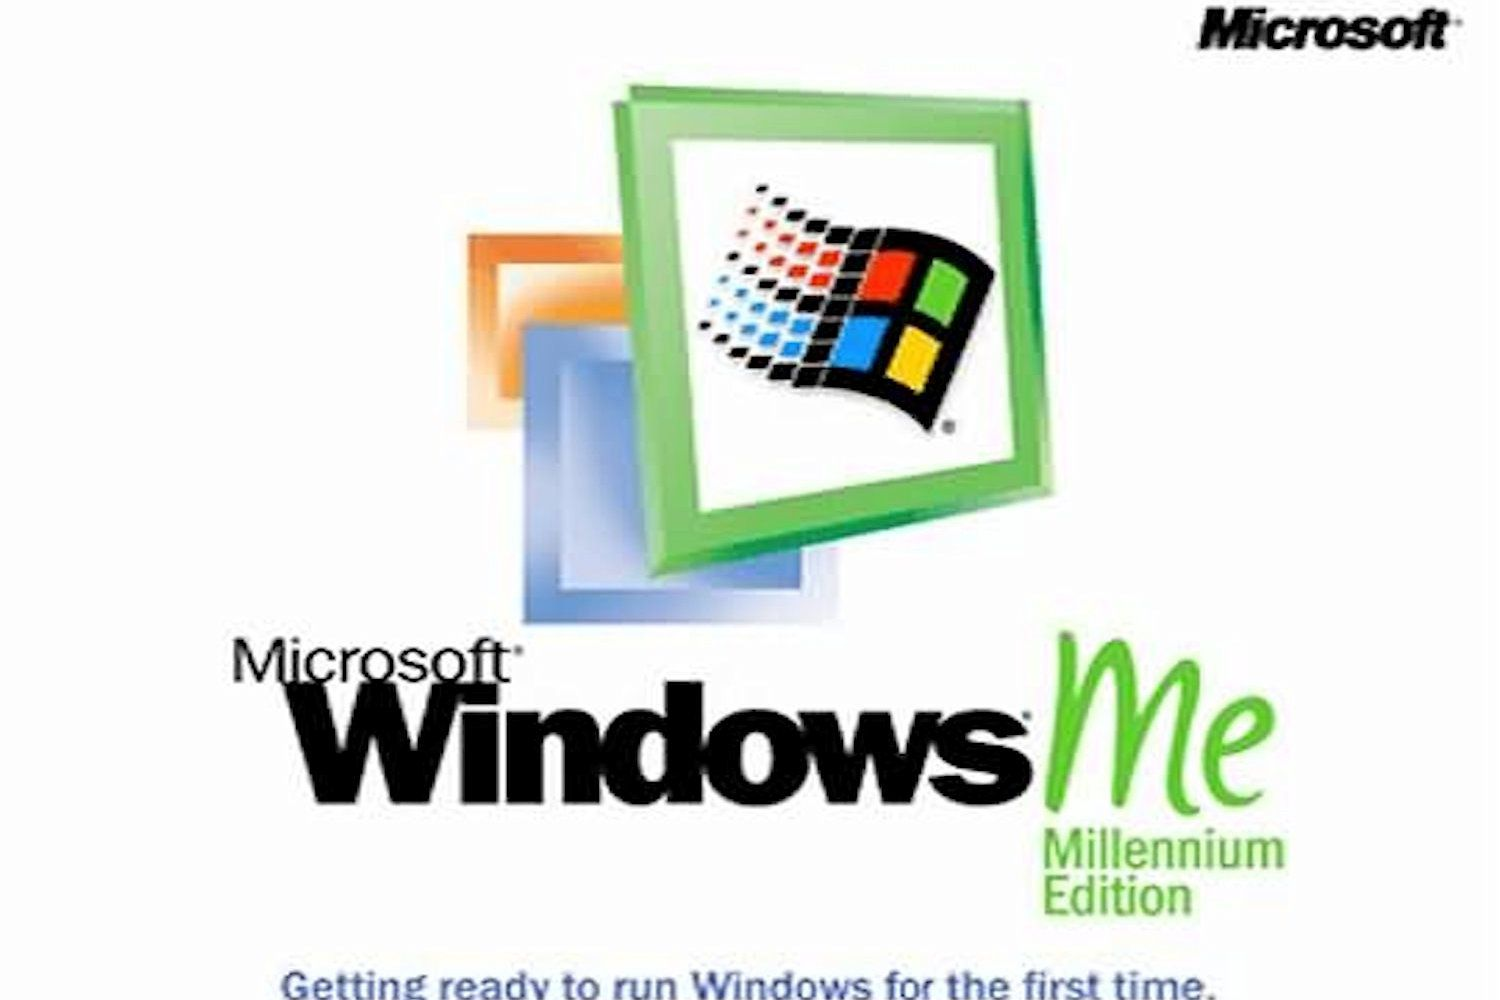 Where Can I Download the Windows Me ISO?